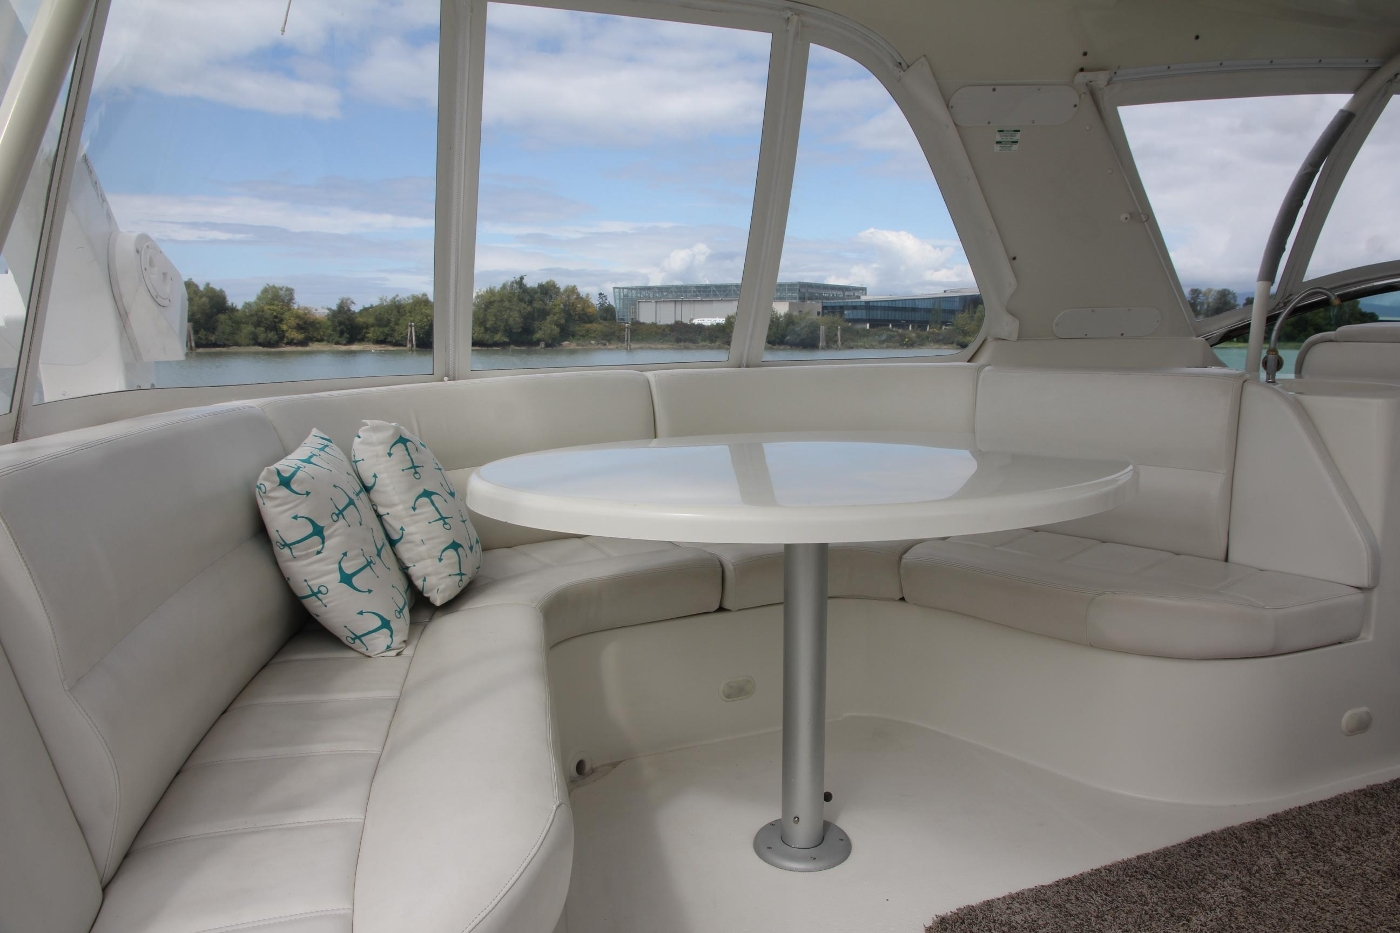 2005 Carver 560 Voyager Pilothouse, U-Shaped Sette and Table